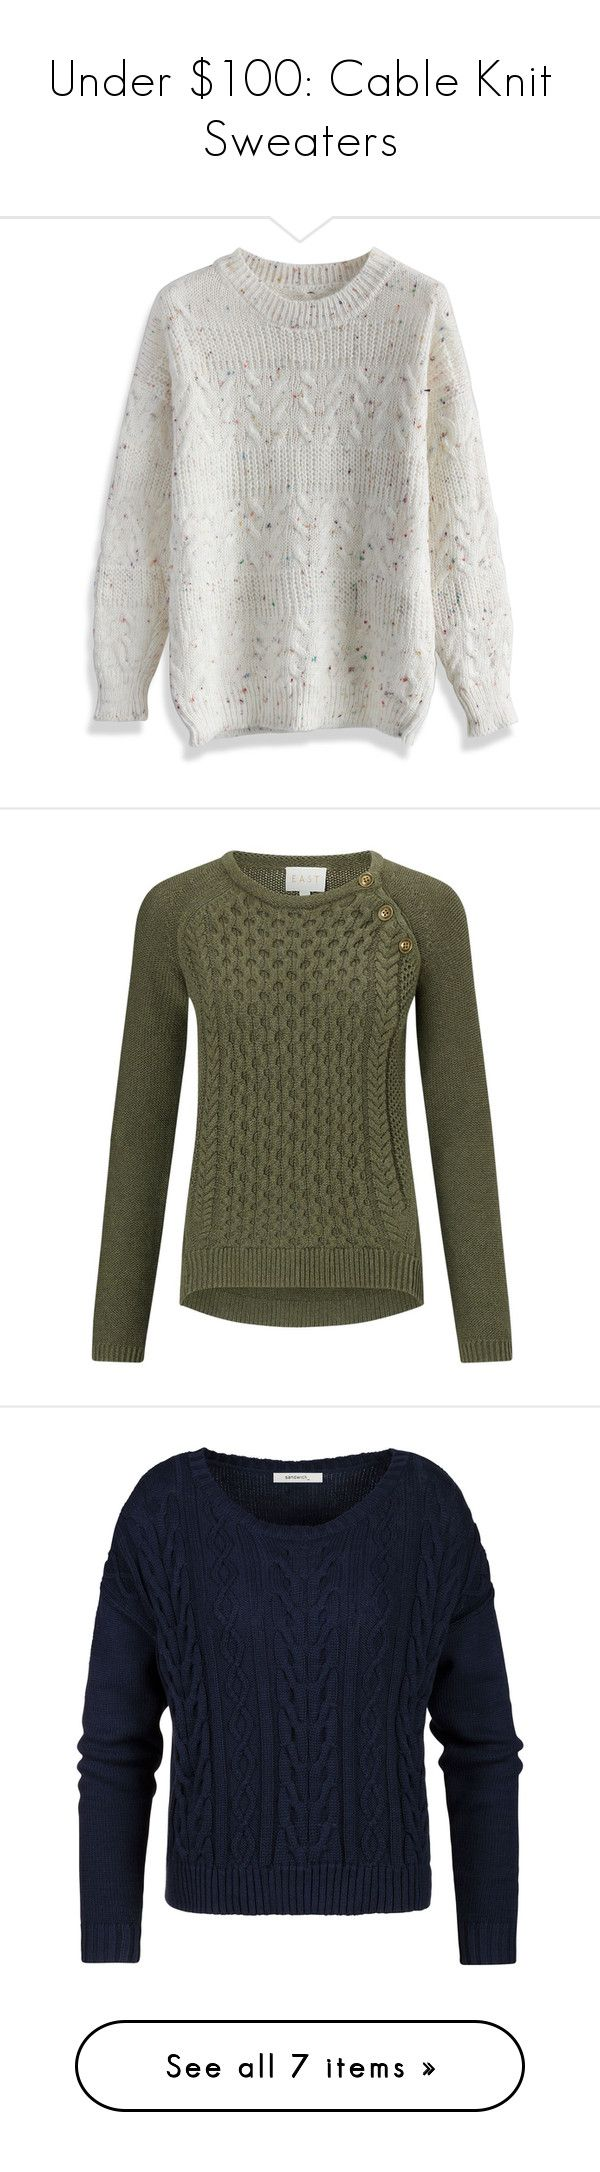 """Under $100: Cable Knit Sweaters"" by polyvore-editorial ❤ liked on Polyvore featuring under100, CC, L.L.Bean, MANGO, Sandwich, EAST, Chicwish, women's clothing, women's fashion and women"